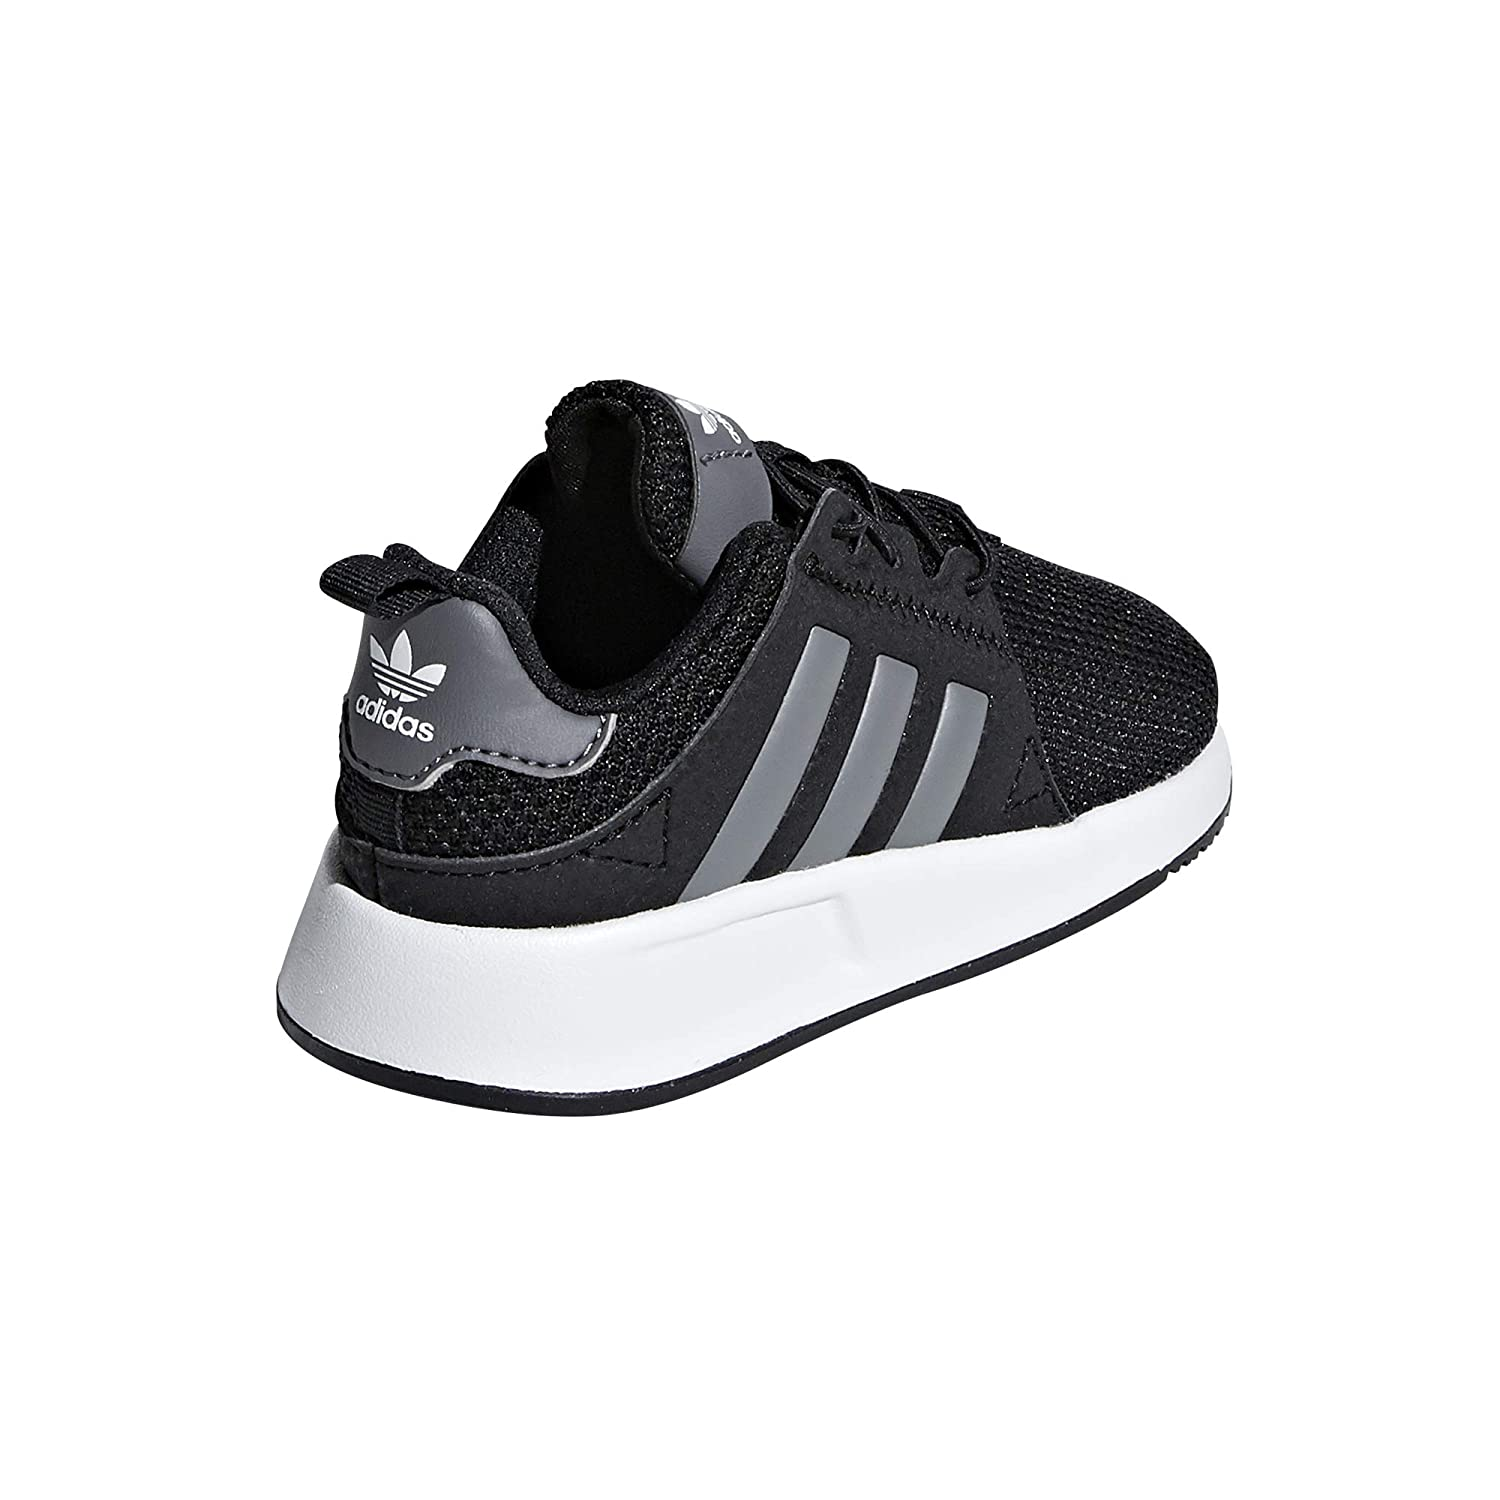 super popular fd25e 8f4b7 adidas X PLR El I Scarpe da Fitness Unisex - Bambini  MainApps  Amazon.it   Scarpe e borse